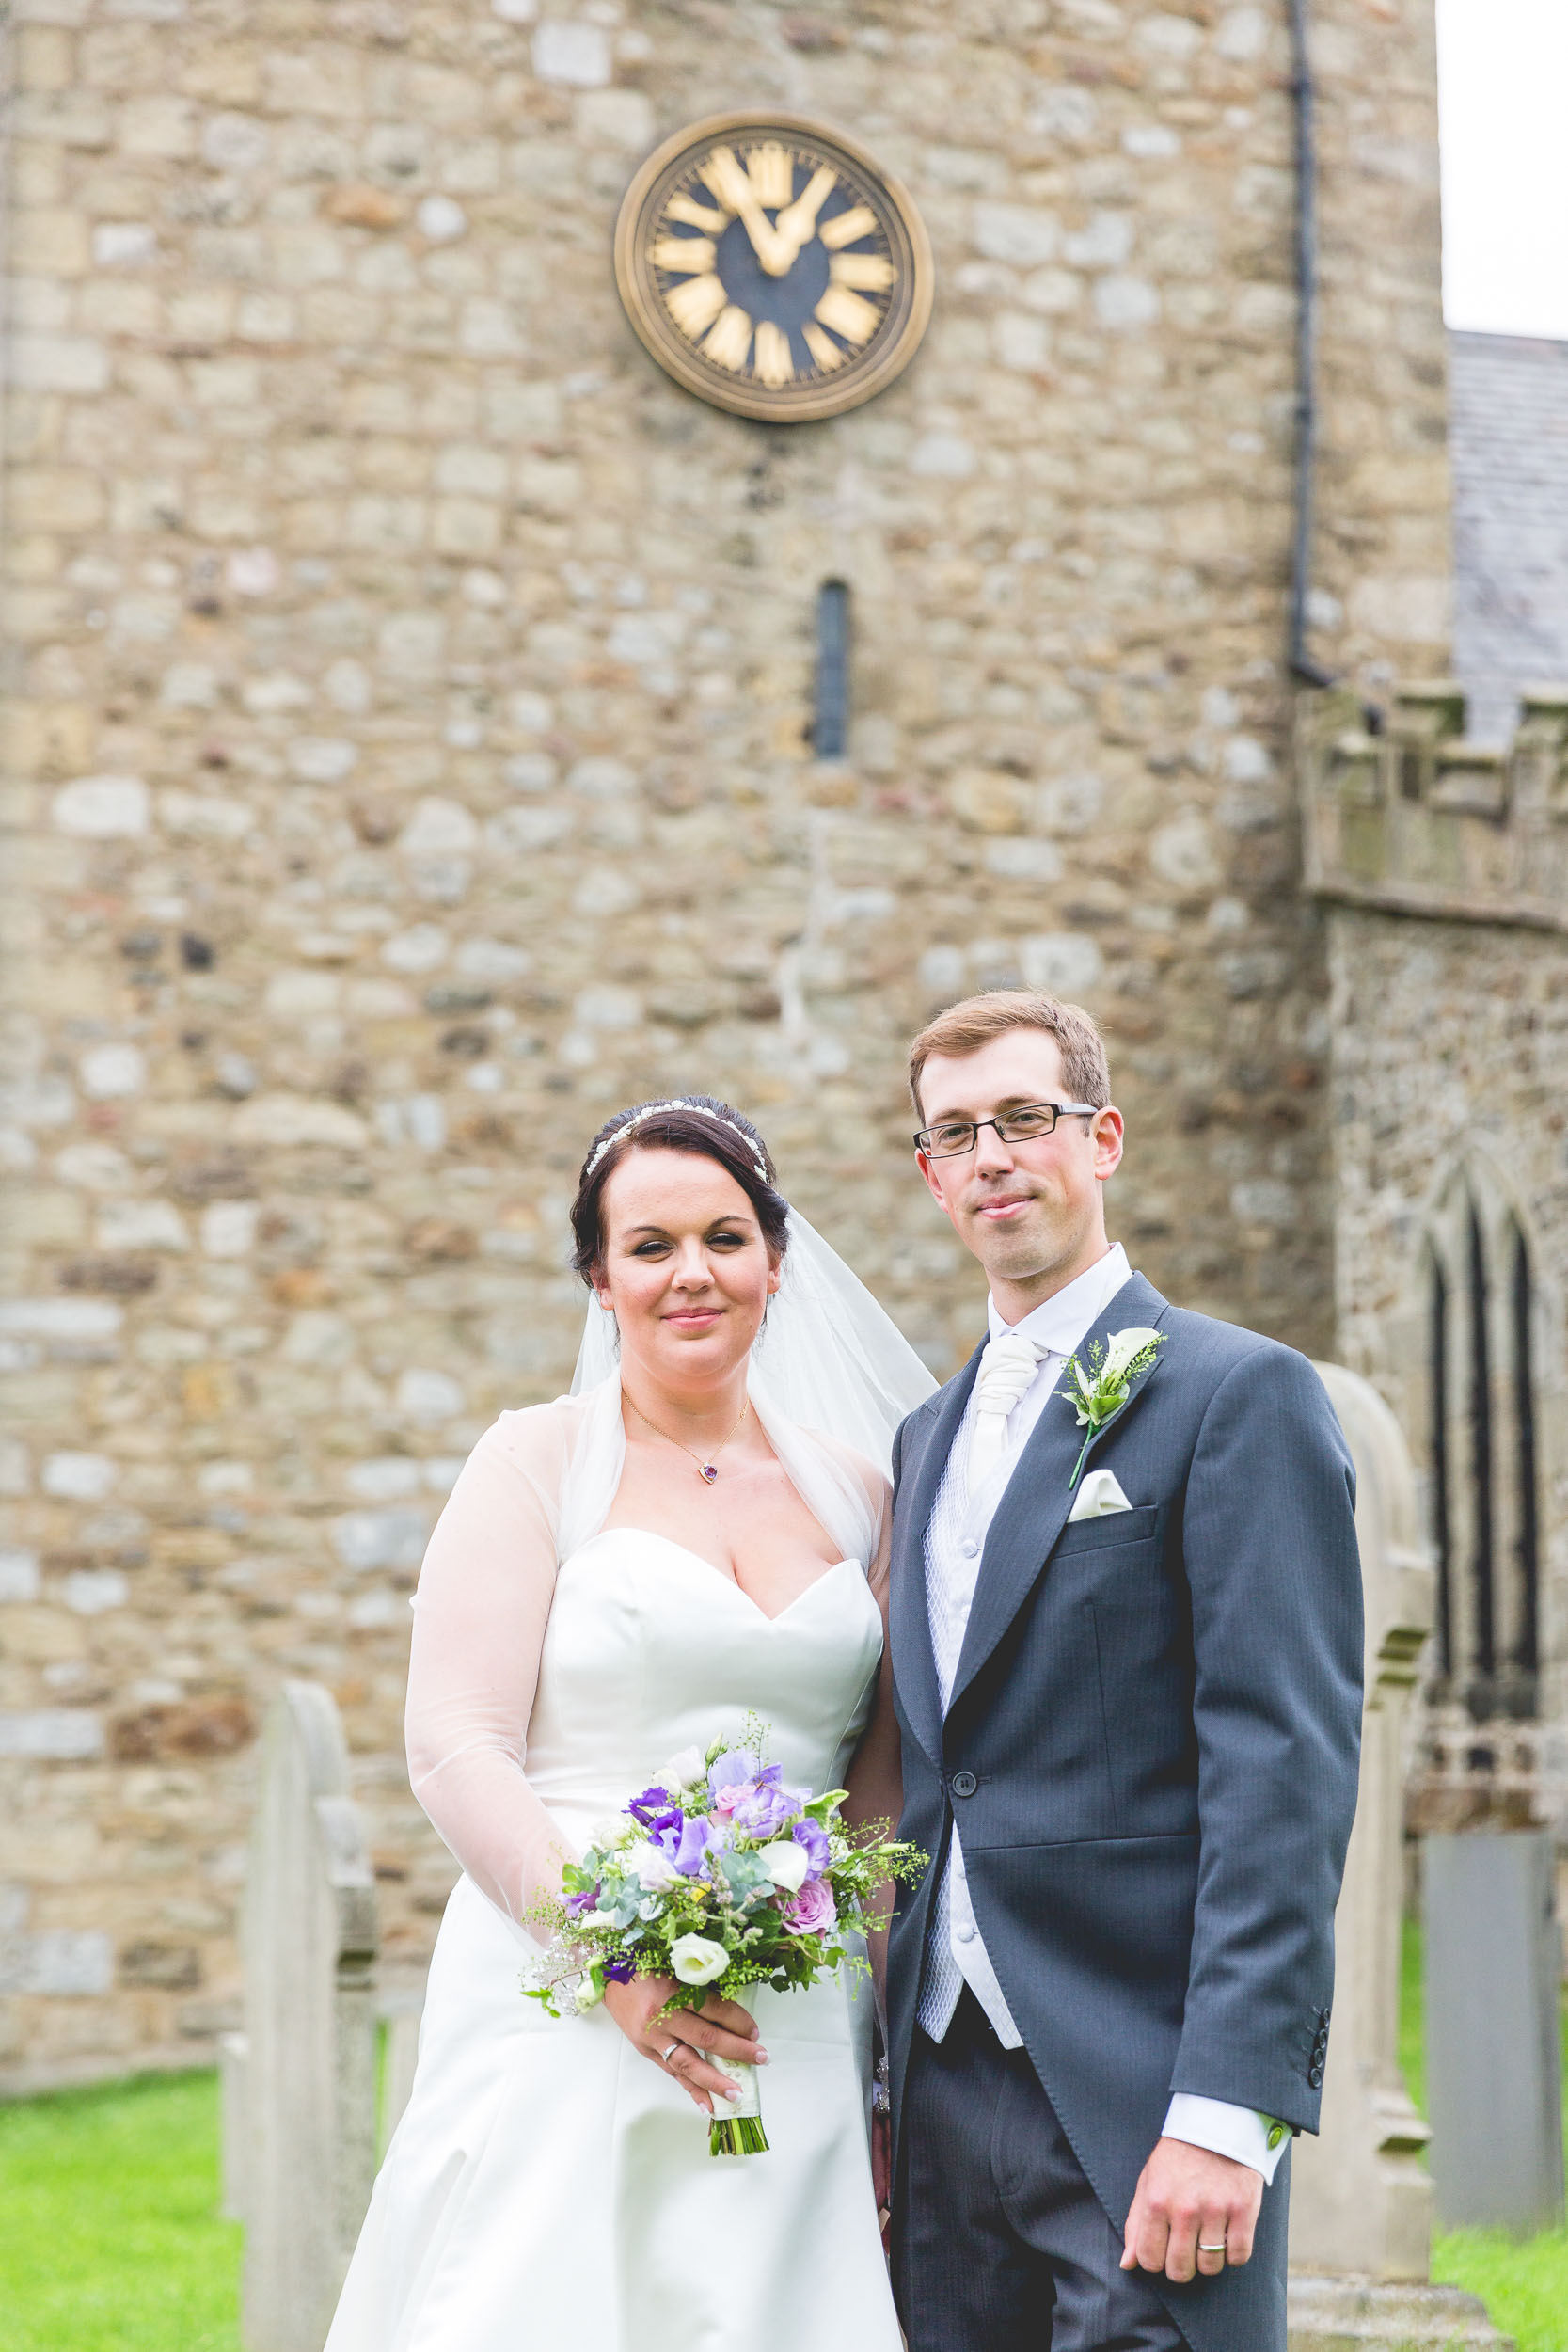 Nicola & Matt-Wedding-Coniston Cold Hotel-Yorkshire-photo-0279.jpg